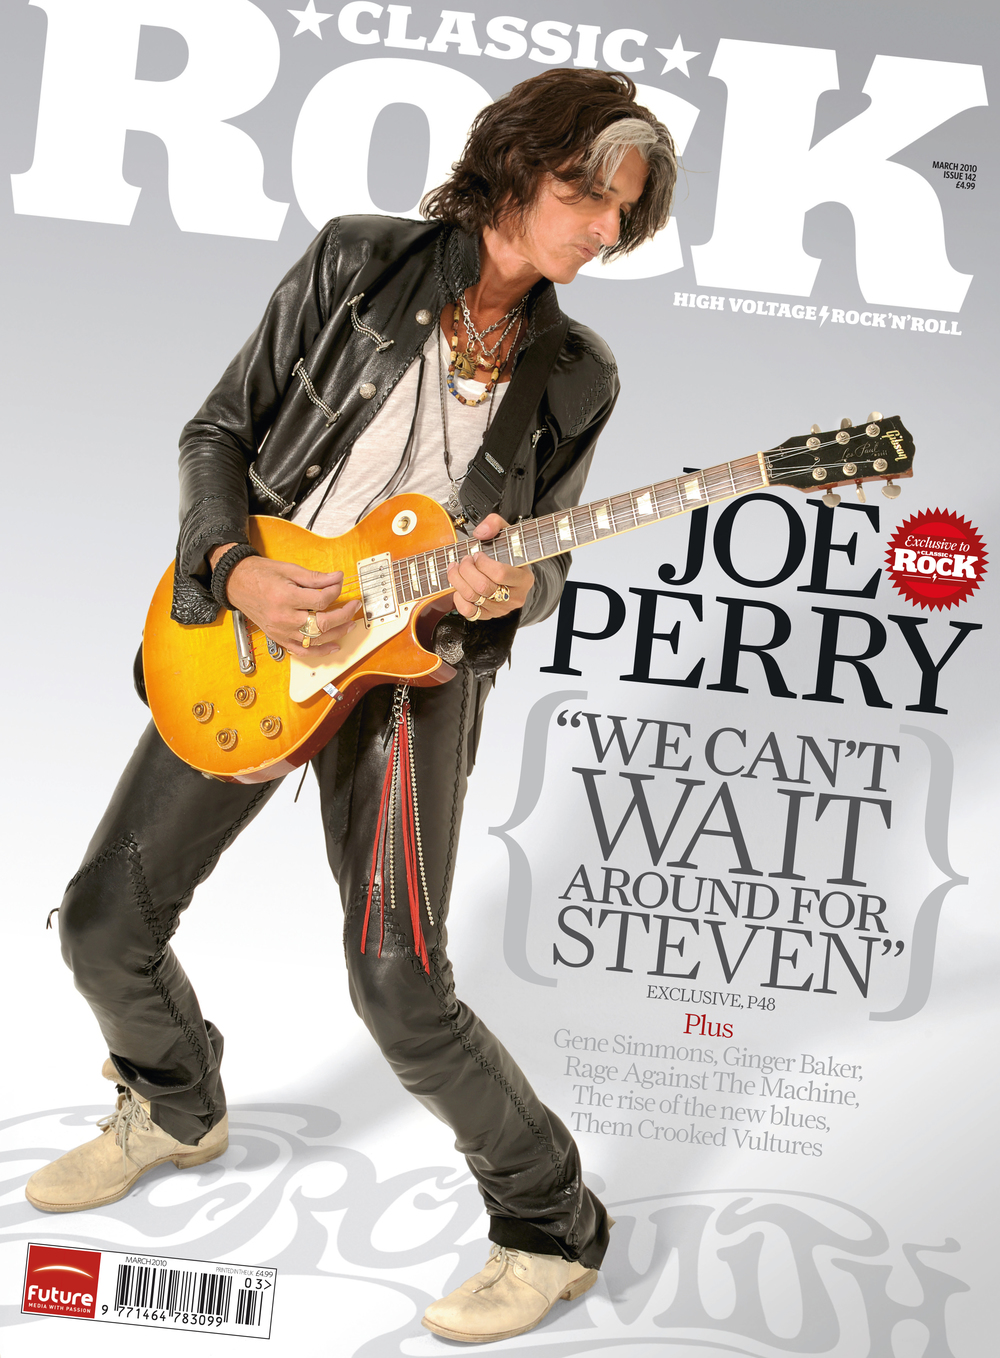 Joe Perry/Aerosmith